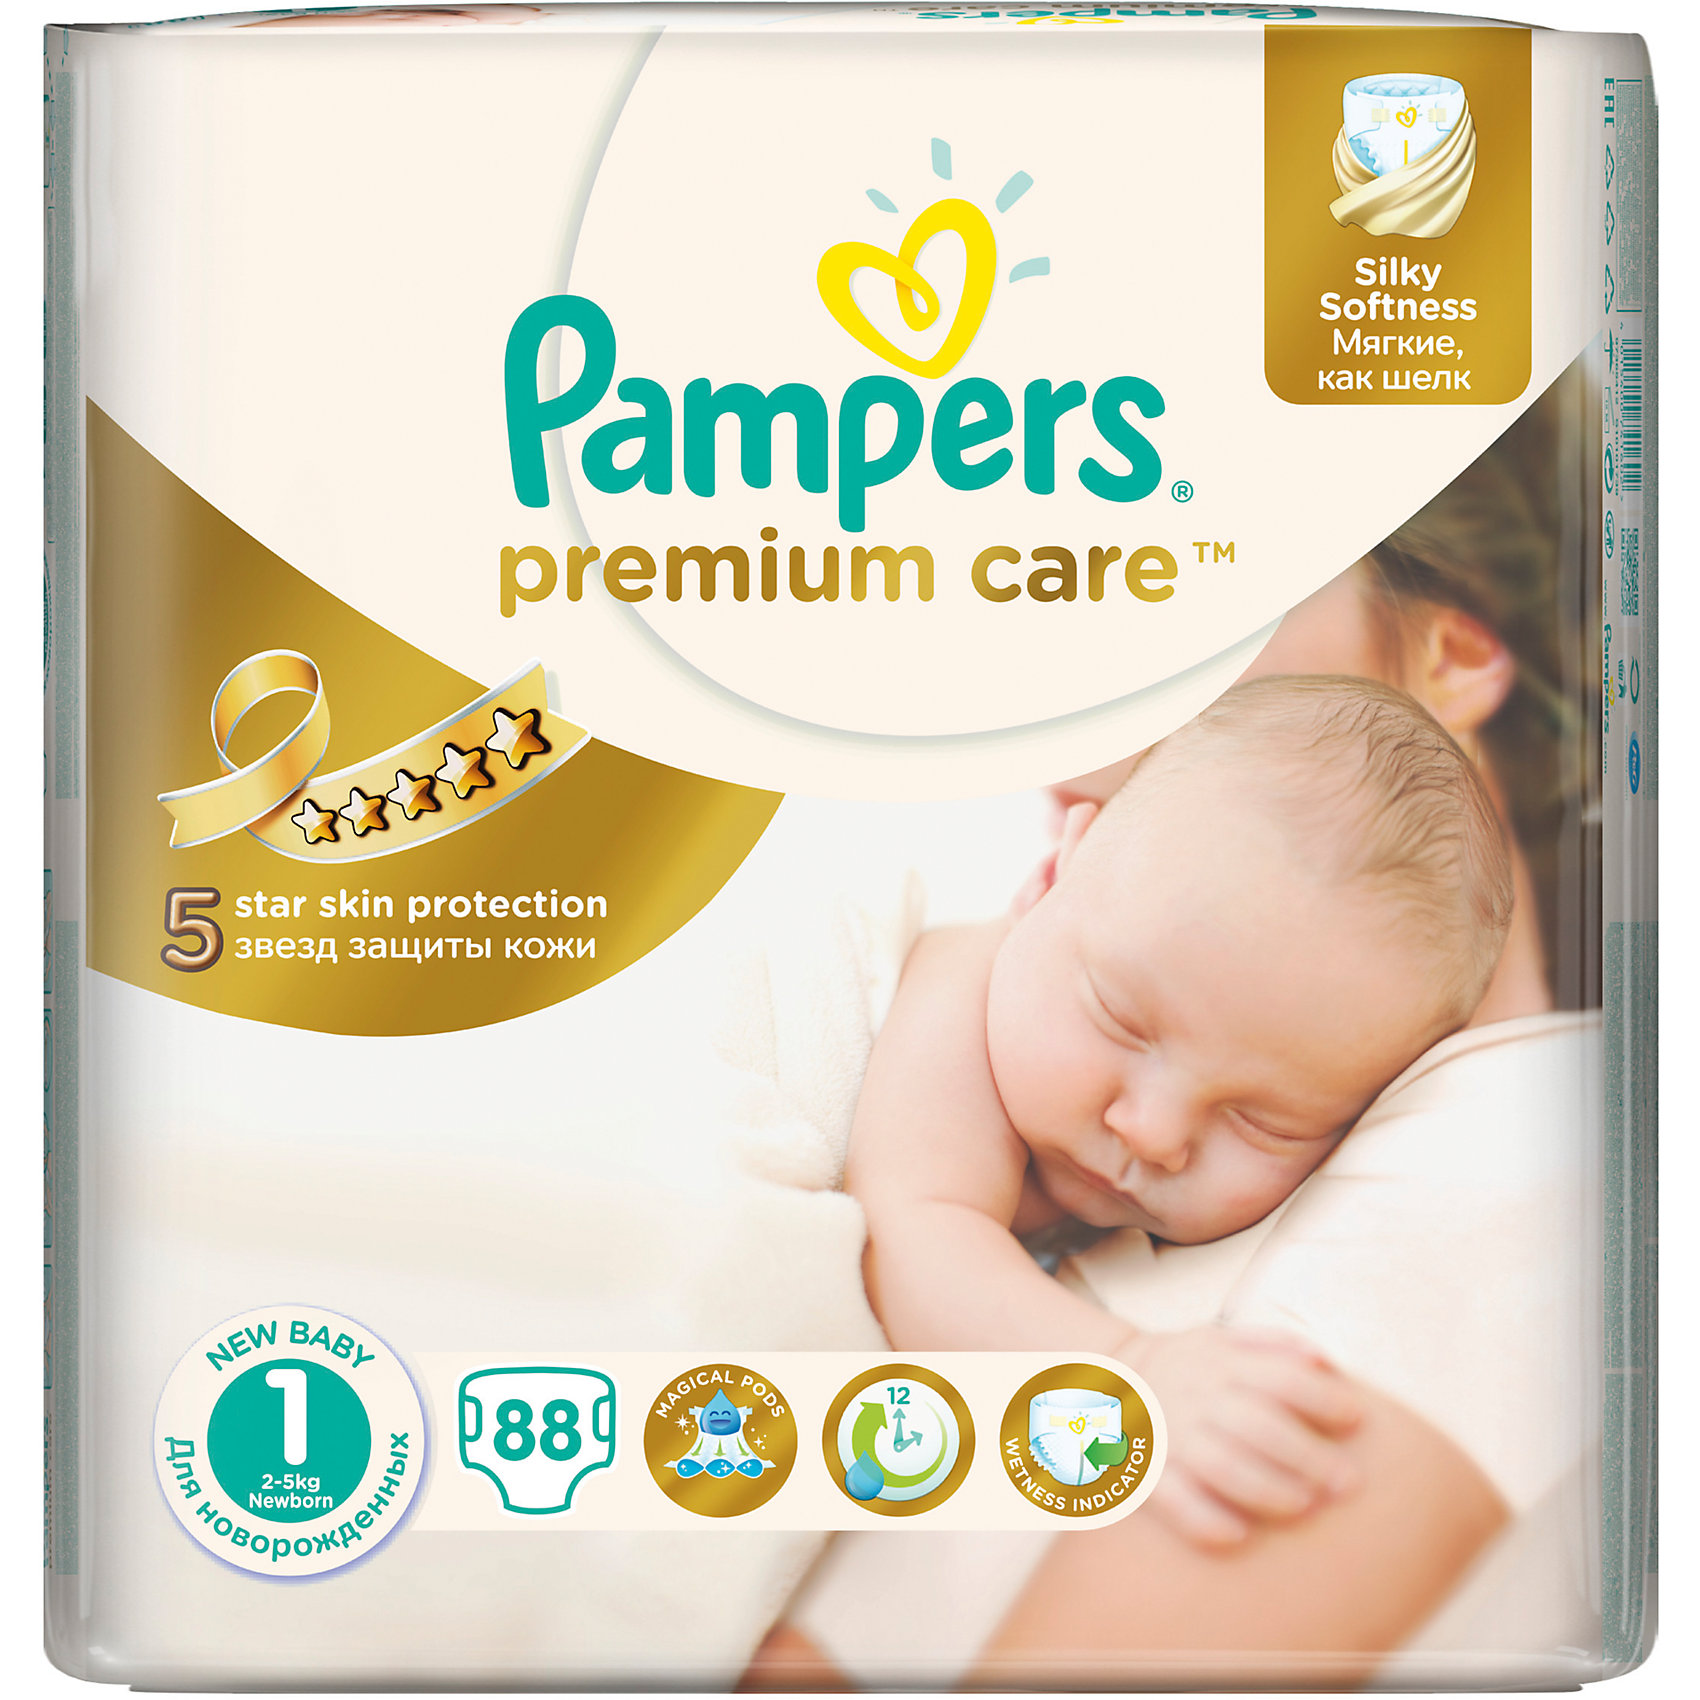 Подгузники Pampers Premium Care Newborn, 2-5 кг., 88 шт.